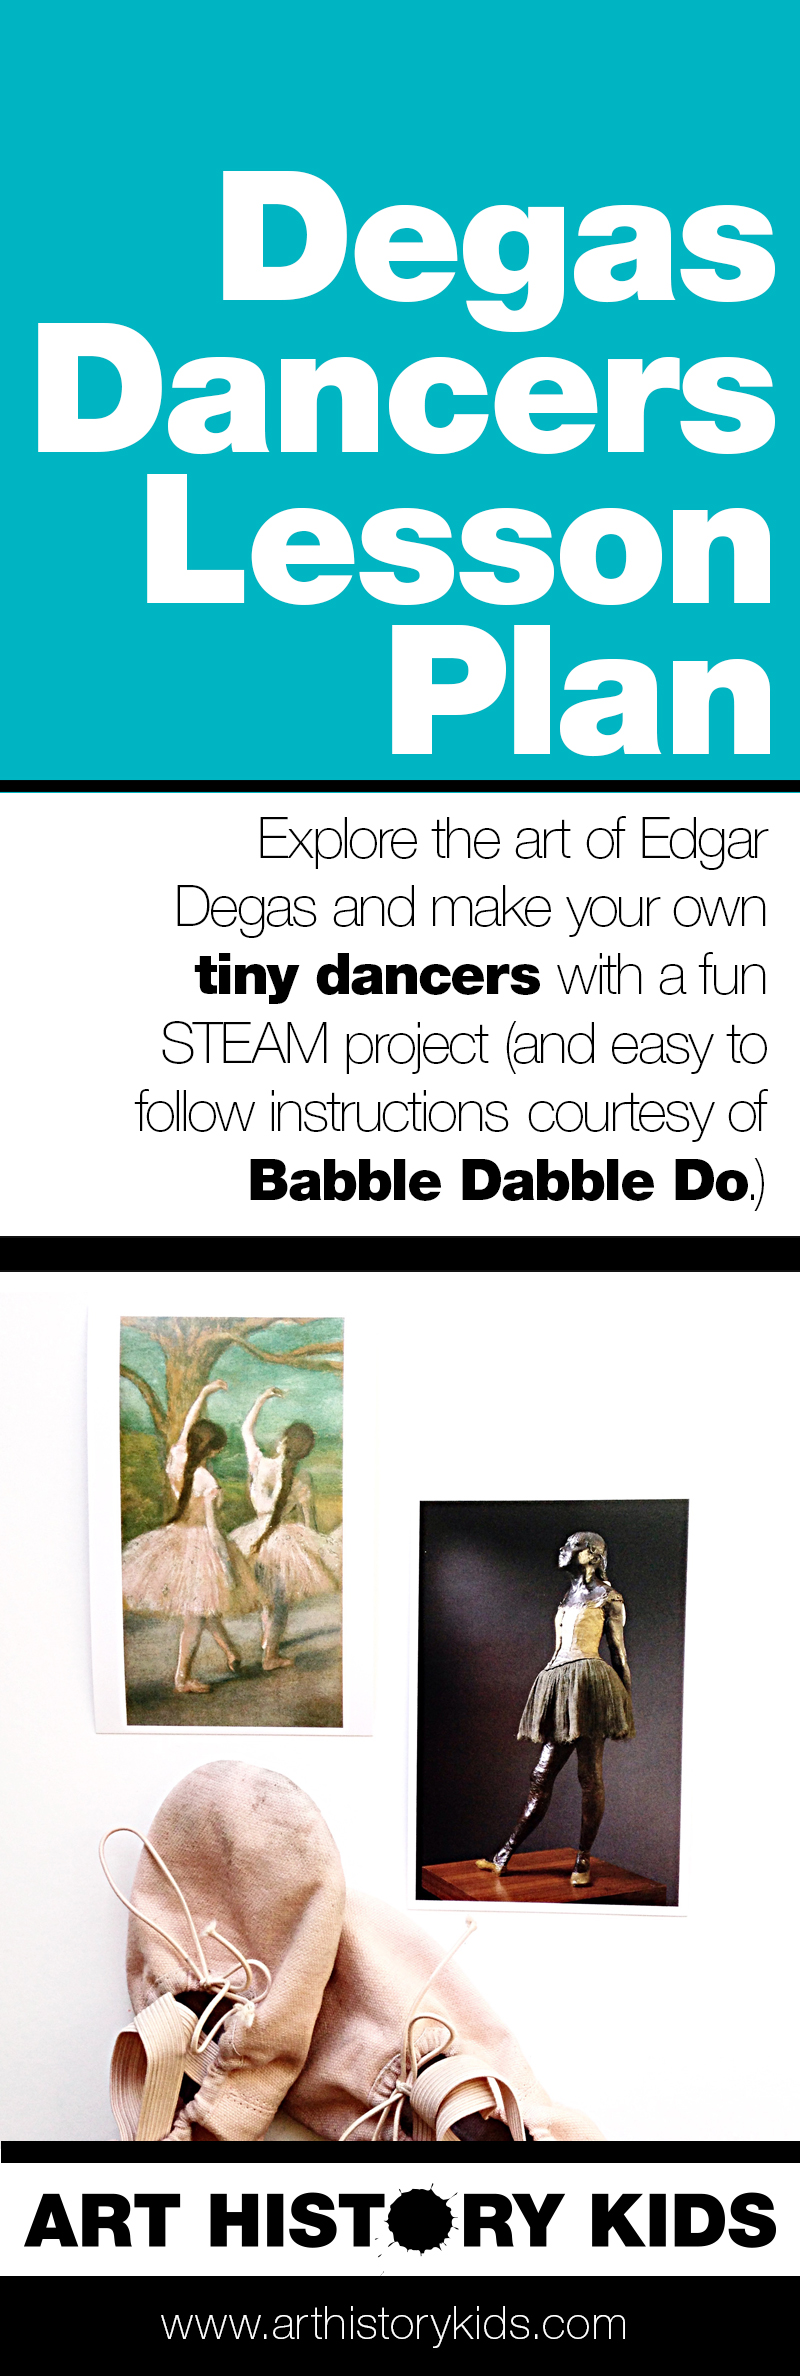 Explore art history with your kids through this mini lesson on Degas ballerina sculptures, and make your own tiny dancers with a fun hands on STEAM project!